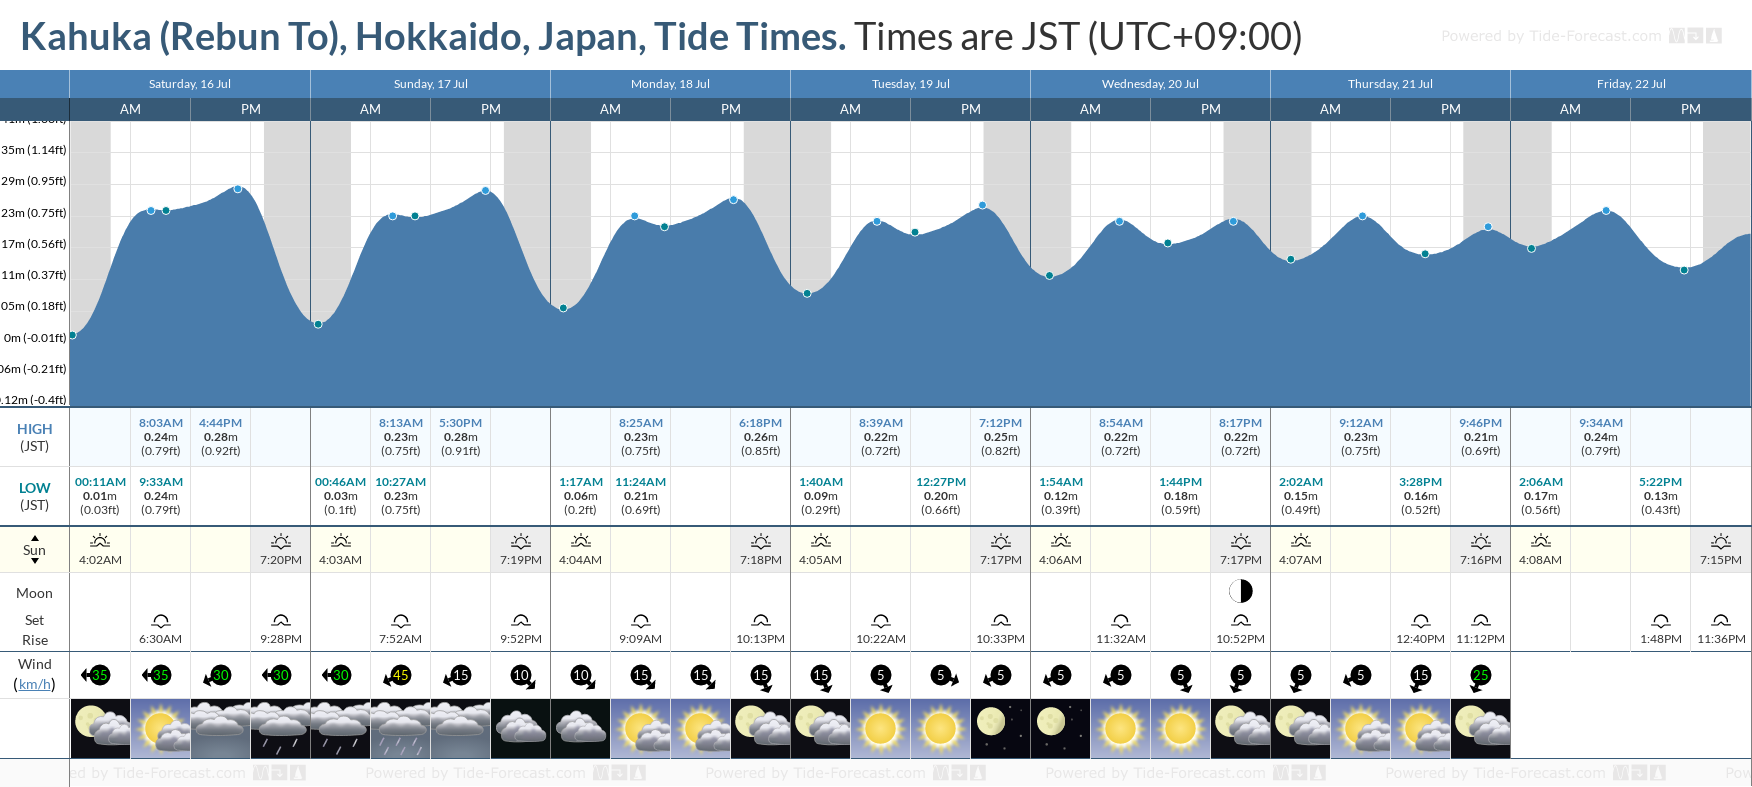 Kahuka (Rebun To), Hokkaido, Japan Tide Chart including high and low tide tide times for the next 7 days